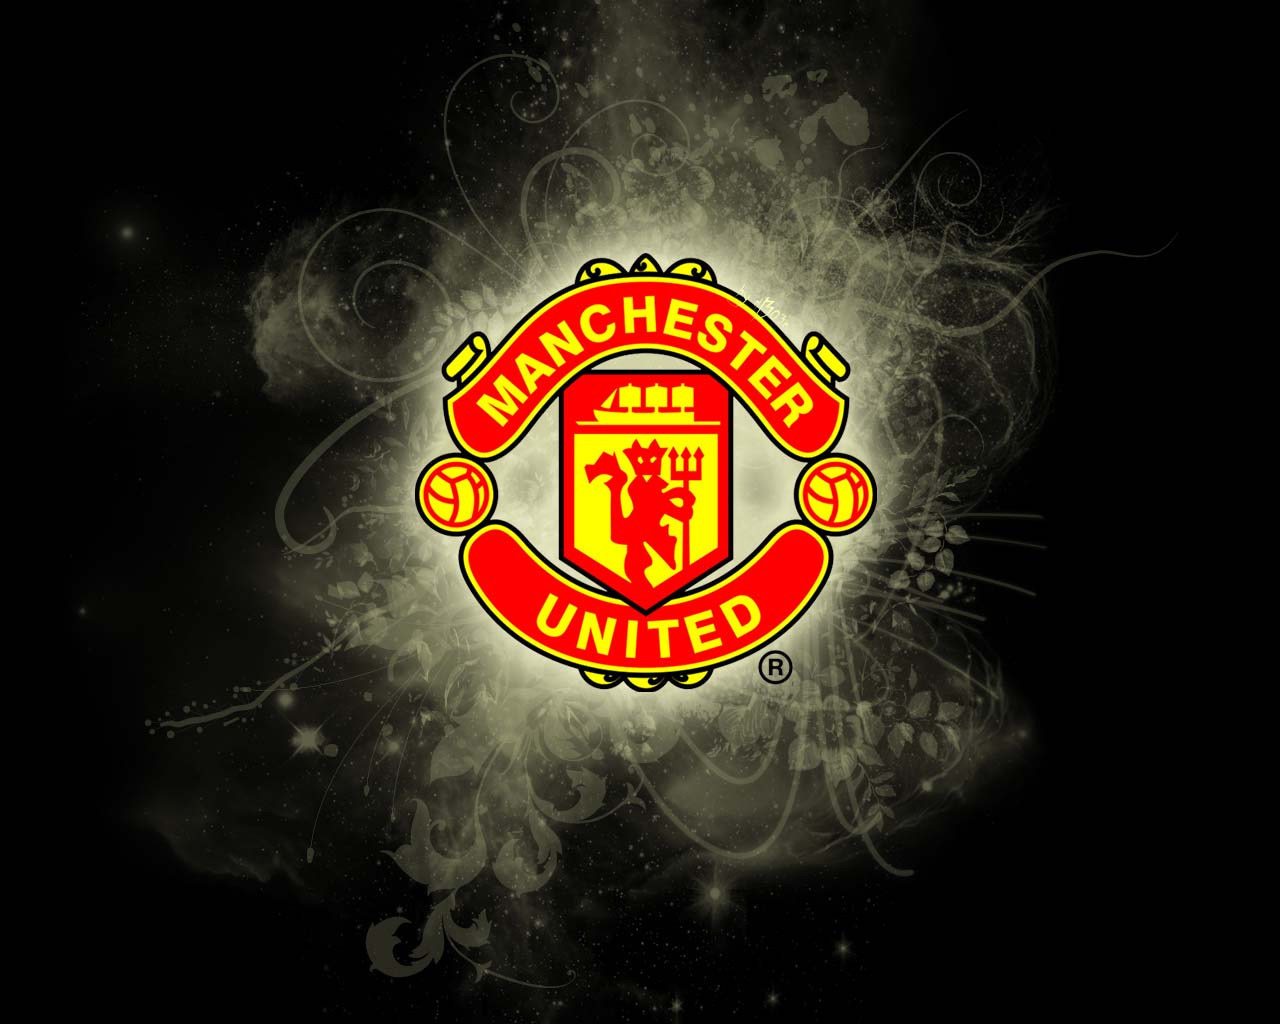 Manchester United Wallpapers 3D 2016 1280x1024 11321 KB 1280x1024